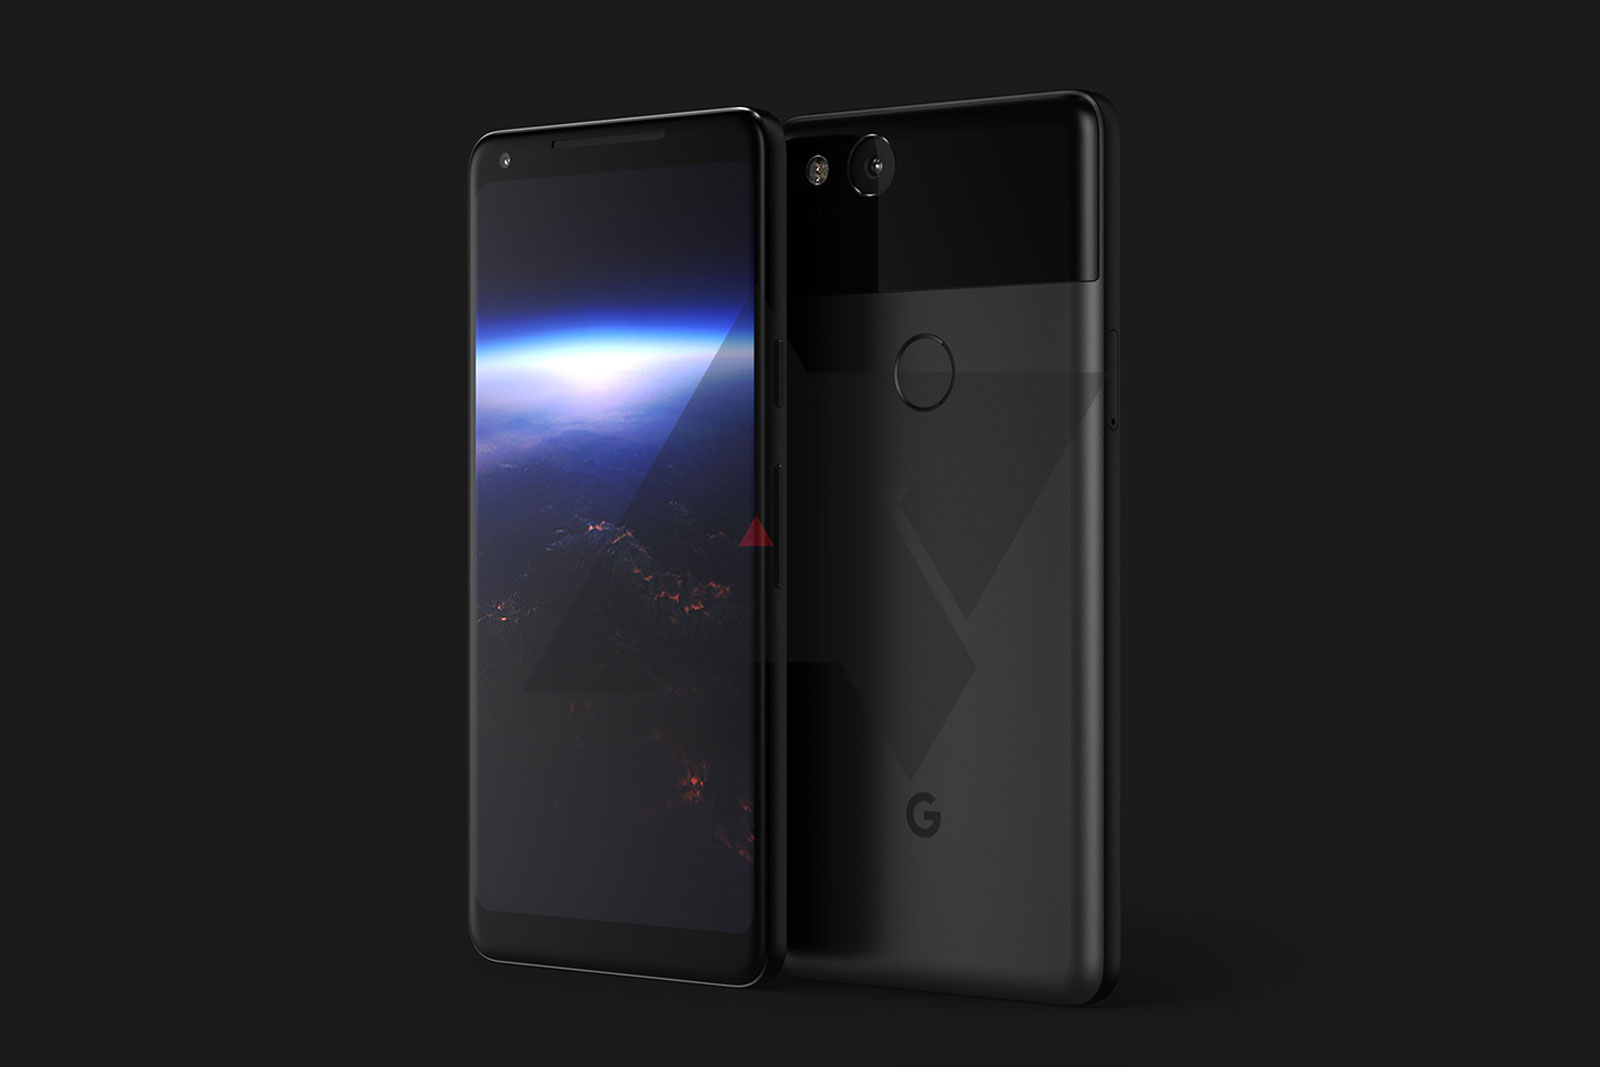 google-pixel-2-xl-android-police.jpg